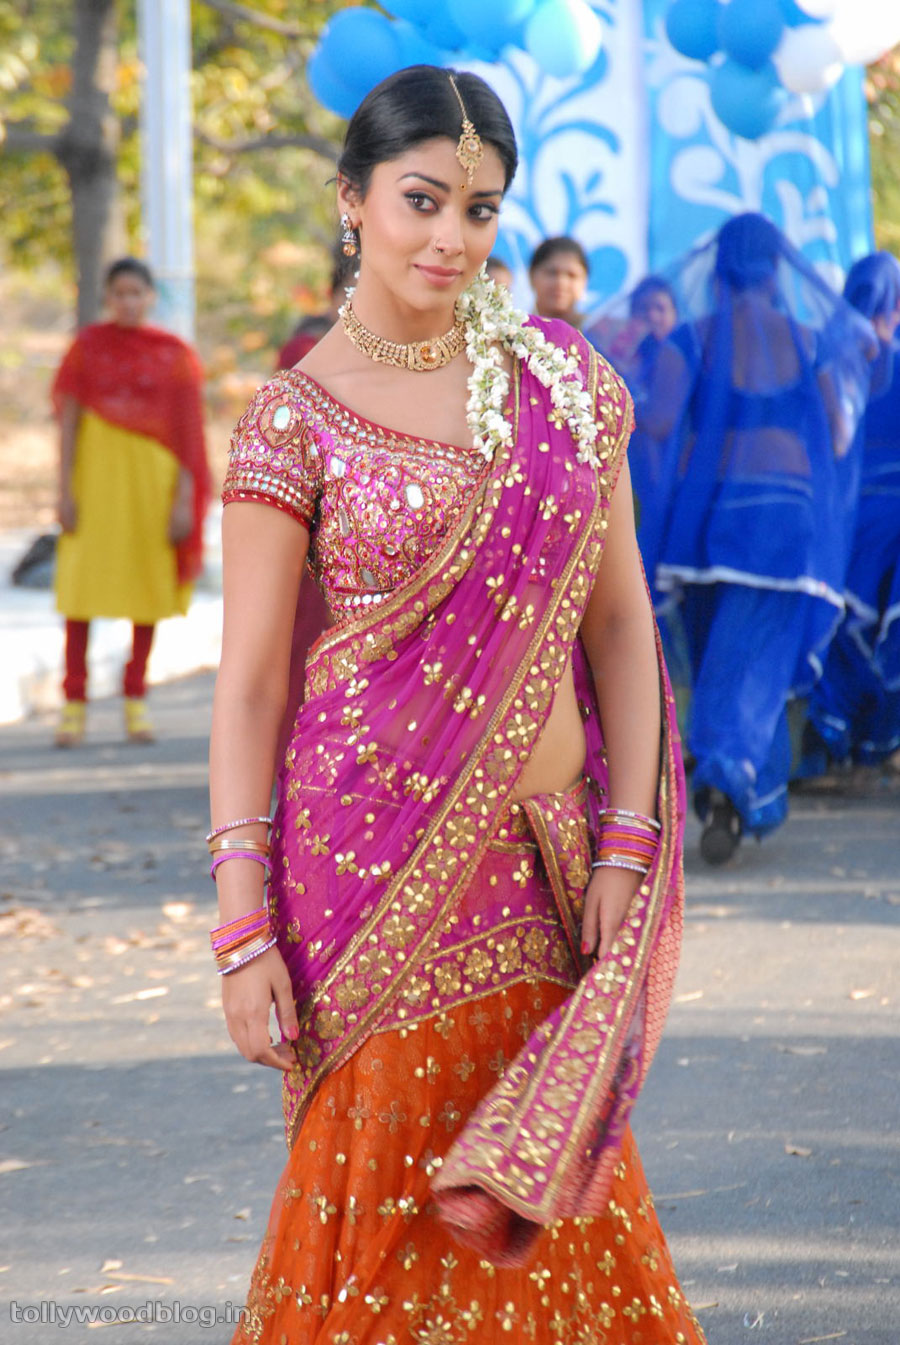 Shriya Saran in Saree Nuvva Nena movie - Shriya Saran Nuvva Nena Saree Wallpaper